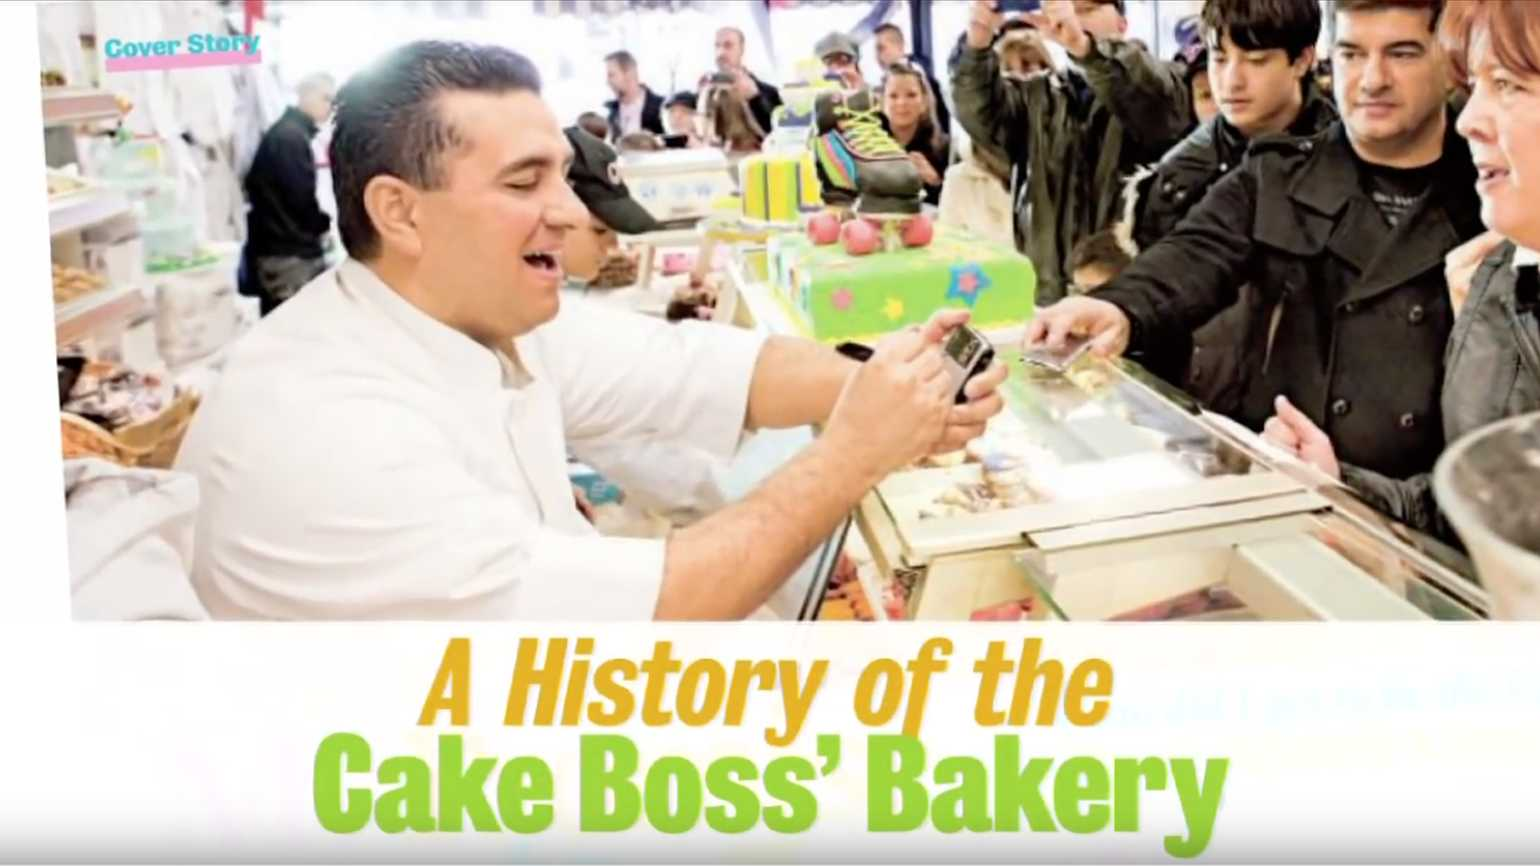 Cake Boss: The History Of A Bakery